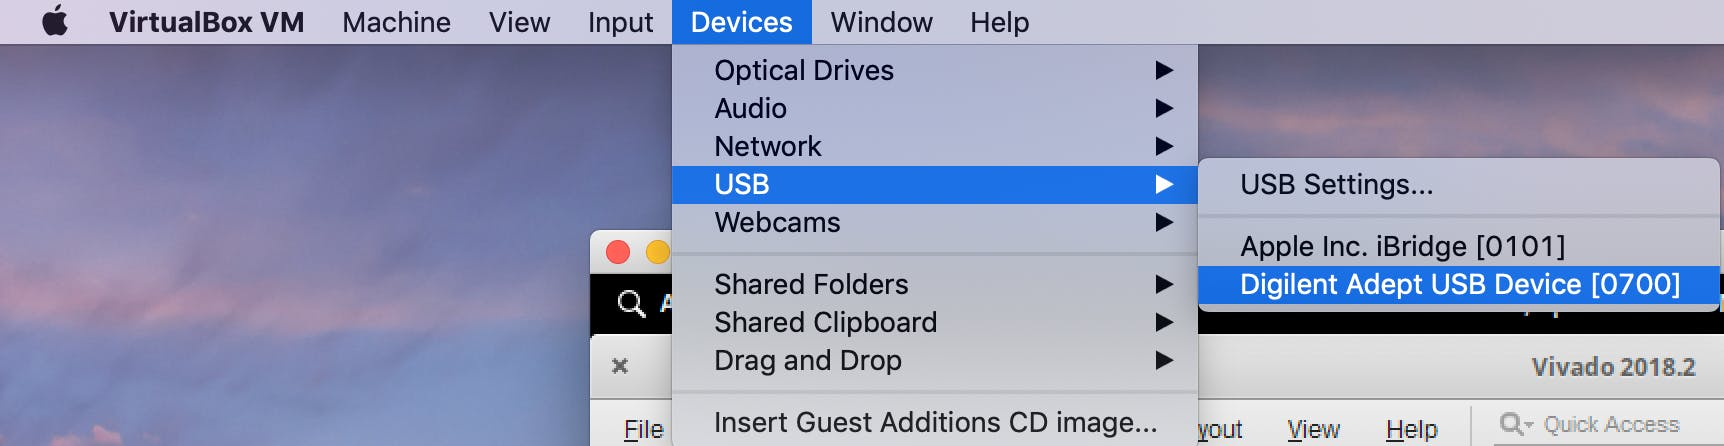 Select the Digilent device so the virtual desktop can see it